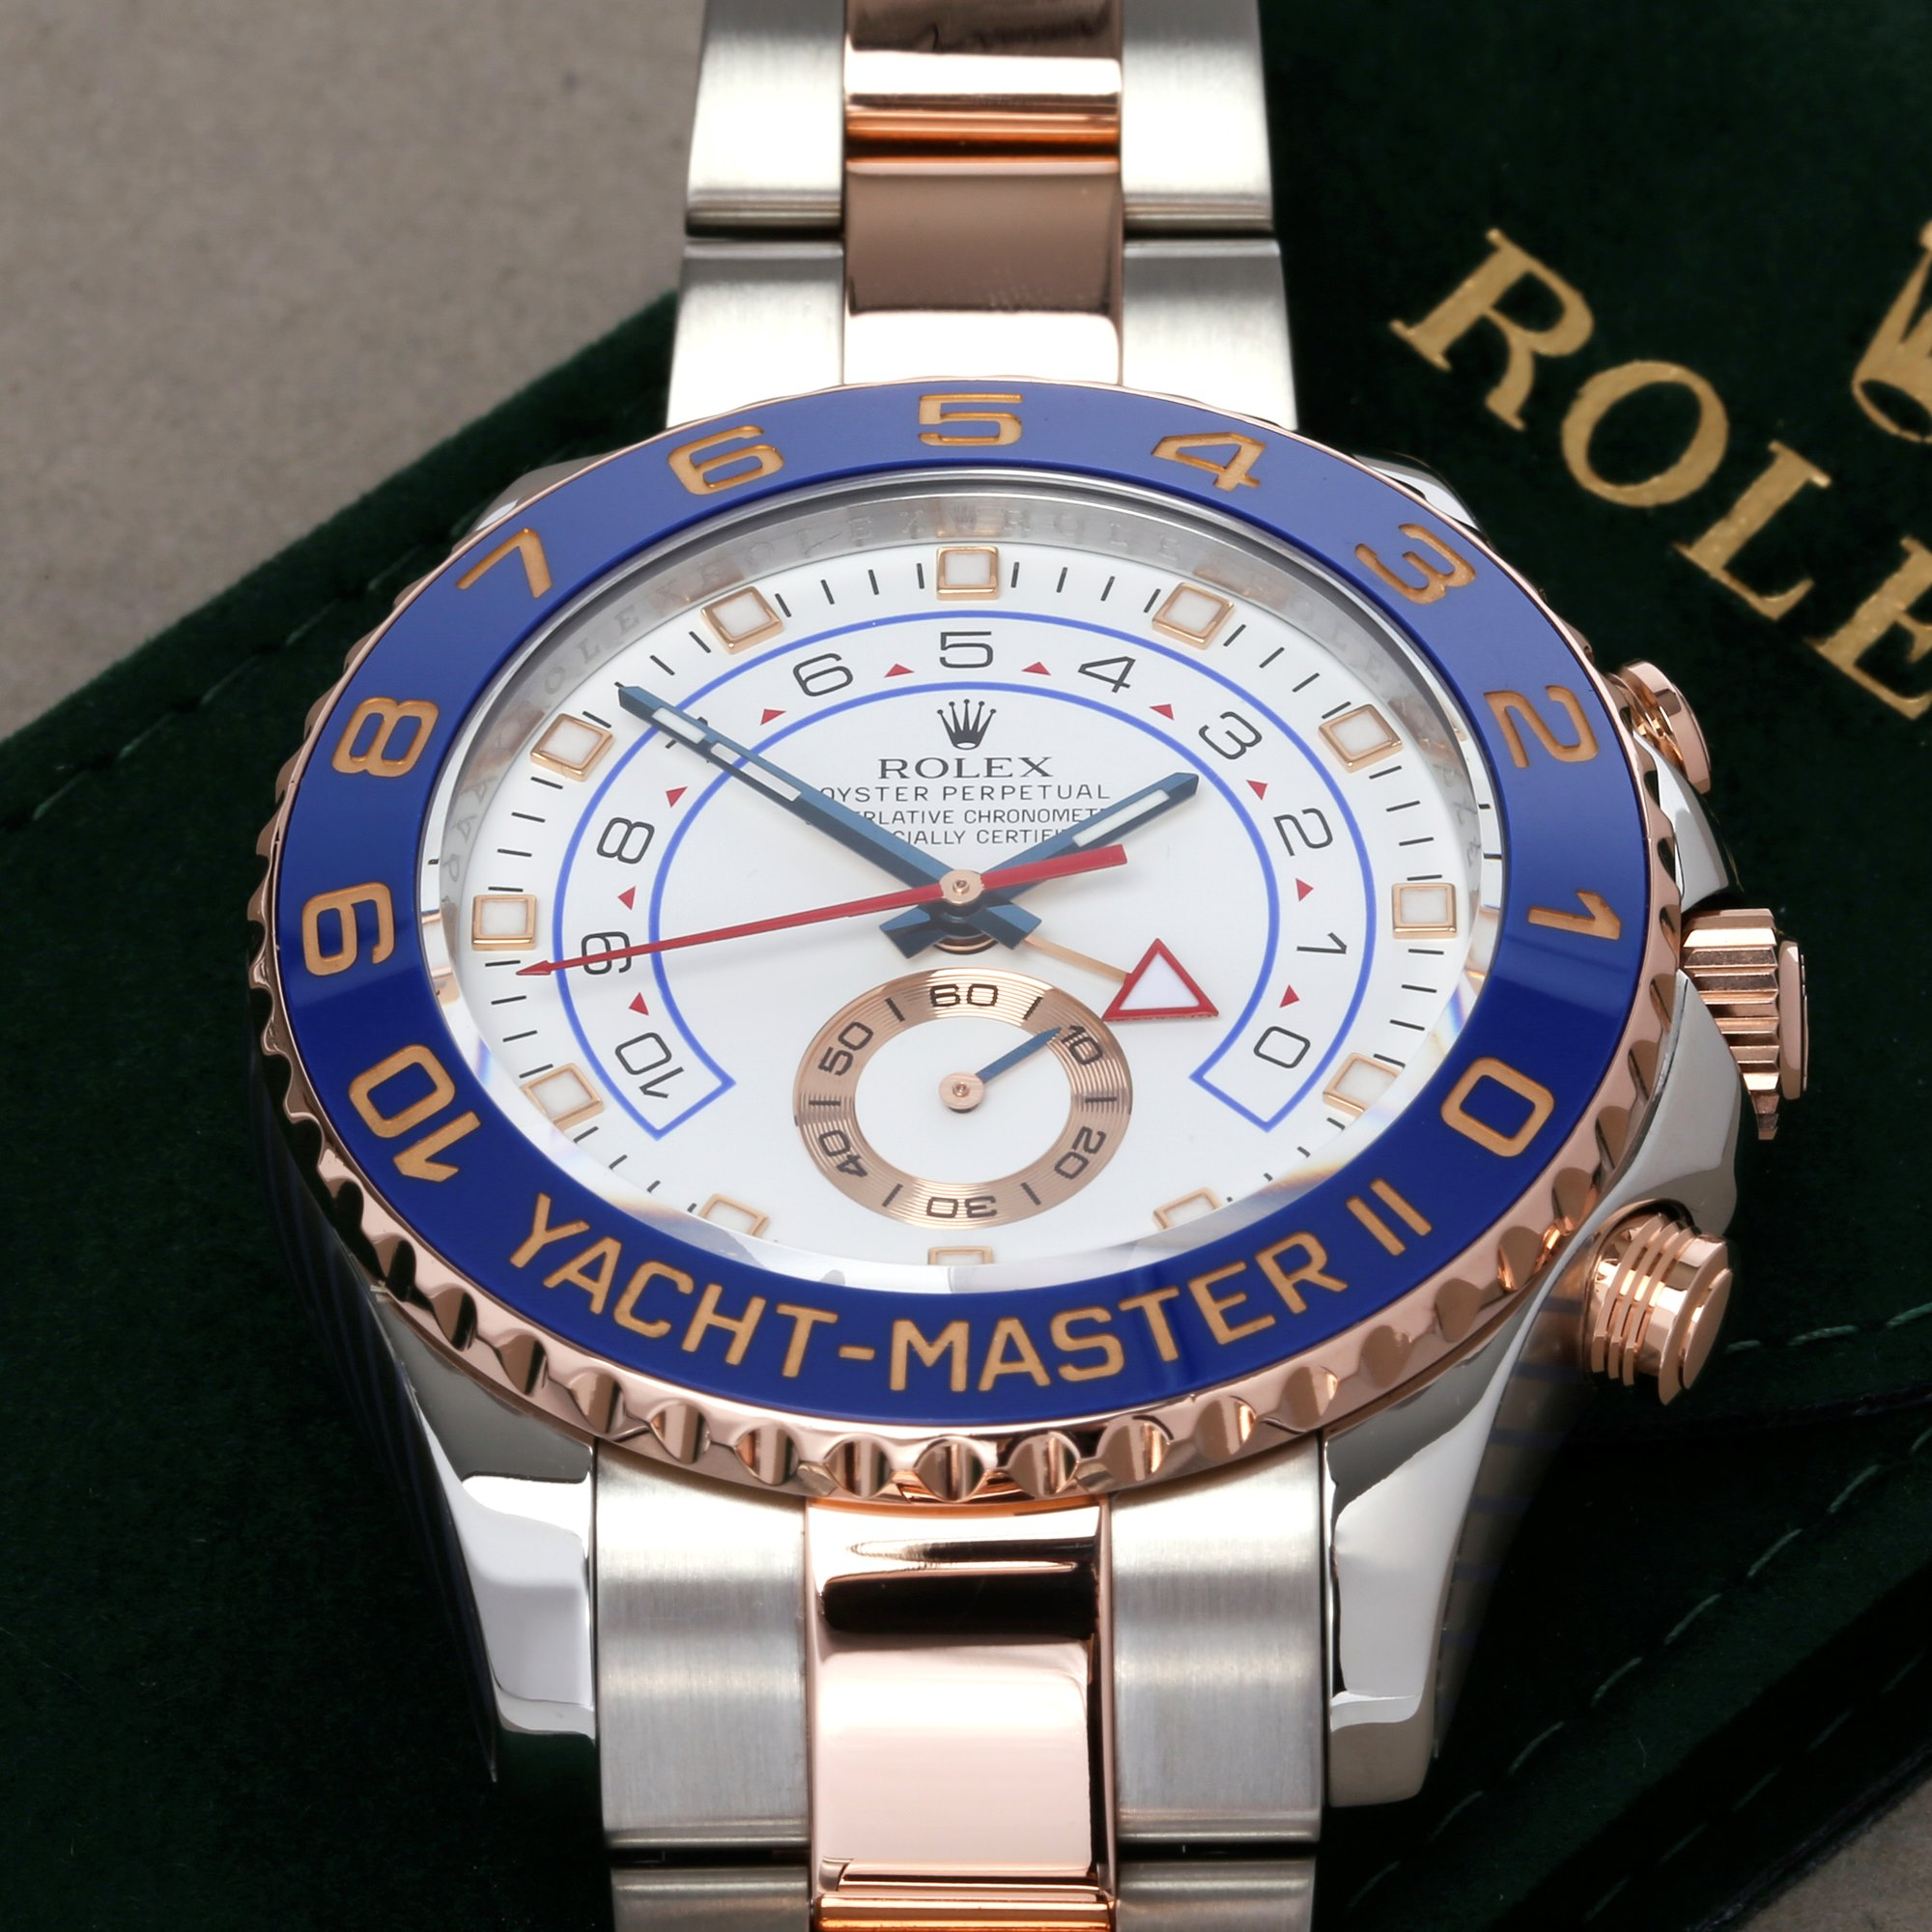 Rolex Yacht-Master II 116681 Men's Rose Gold & Stainless Steel Watch - Image 6 of 10